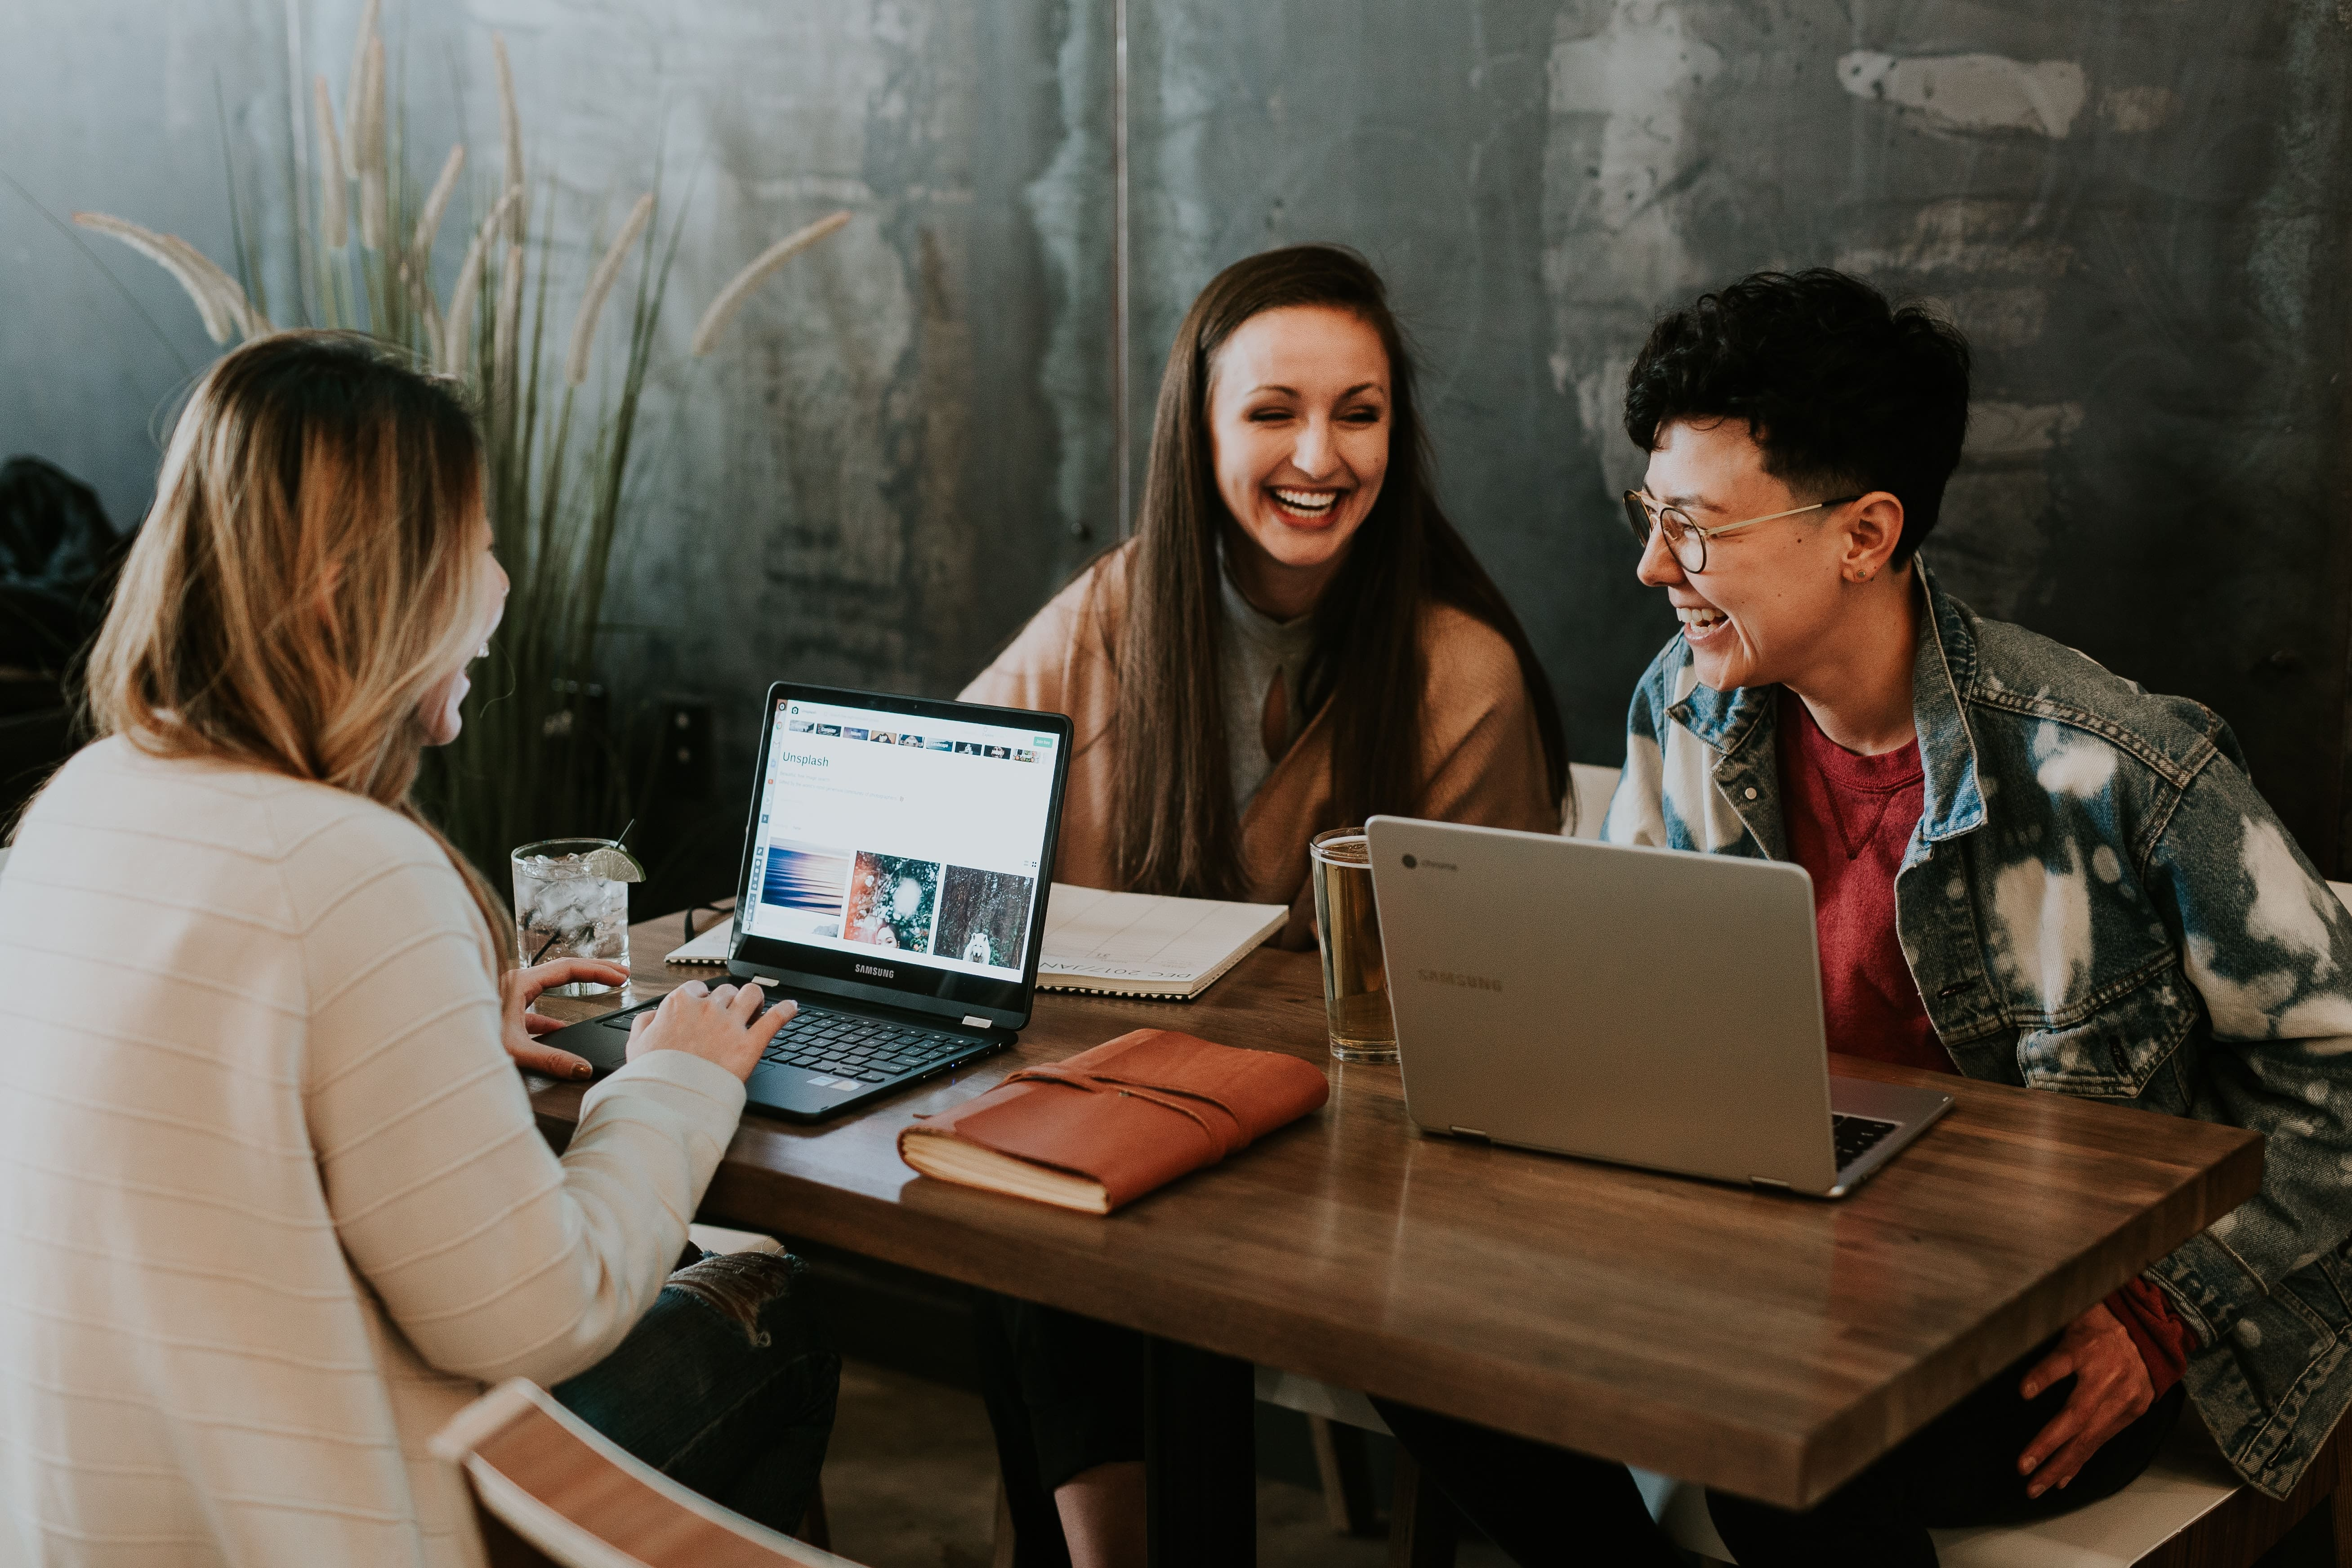 Hybrid workplaces enable human moments at work